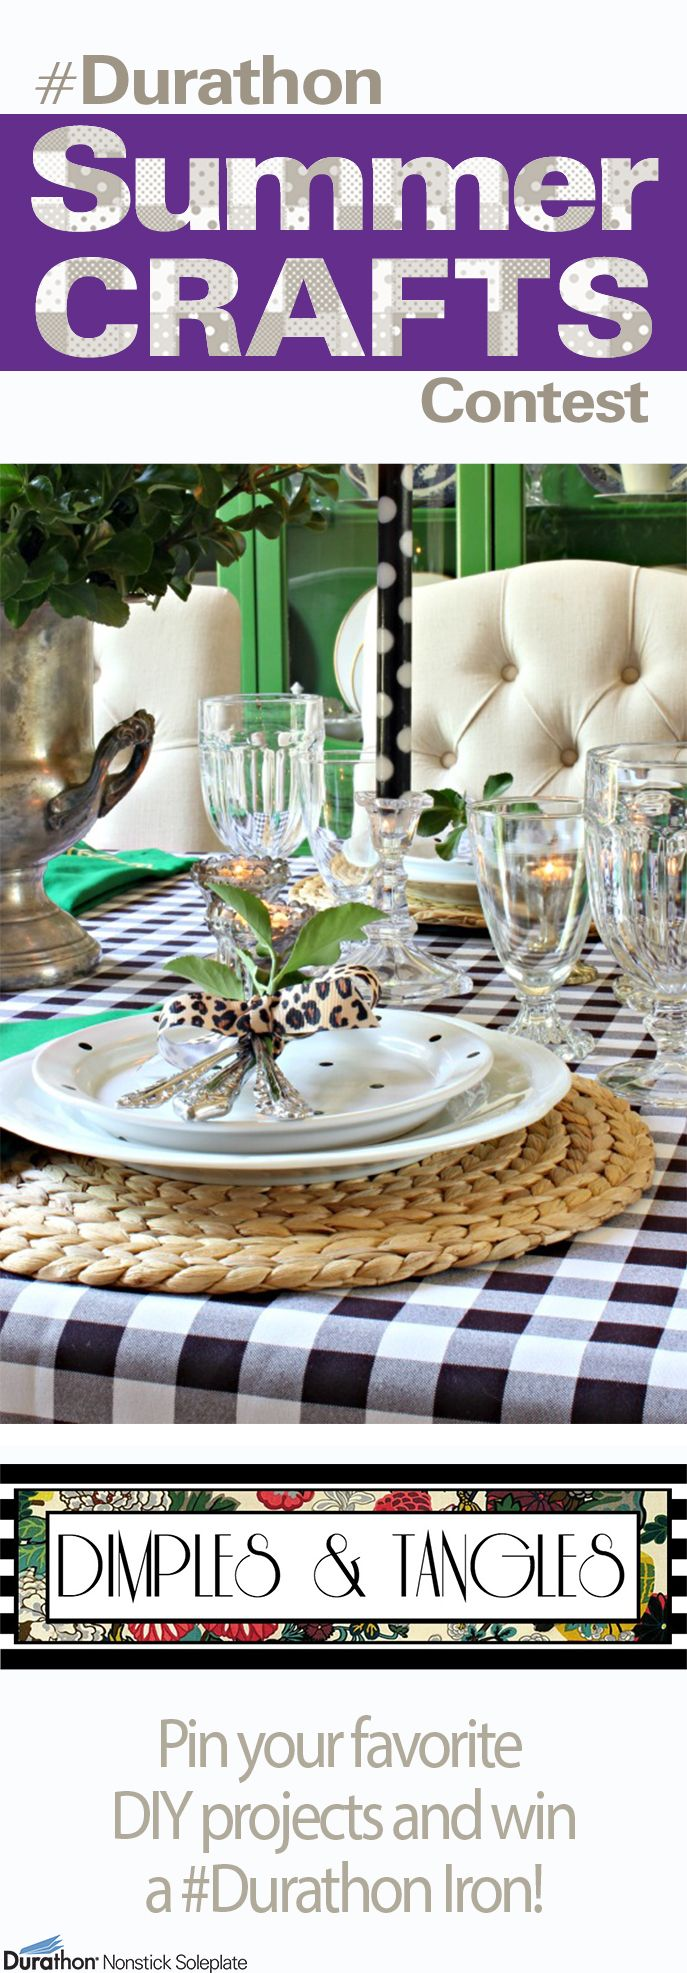 Center Stage: How to Make a Custom Tablecloth (Regular or No-Sew) with Dimples and Tangles | #Durathon